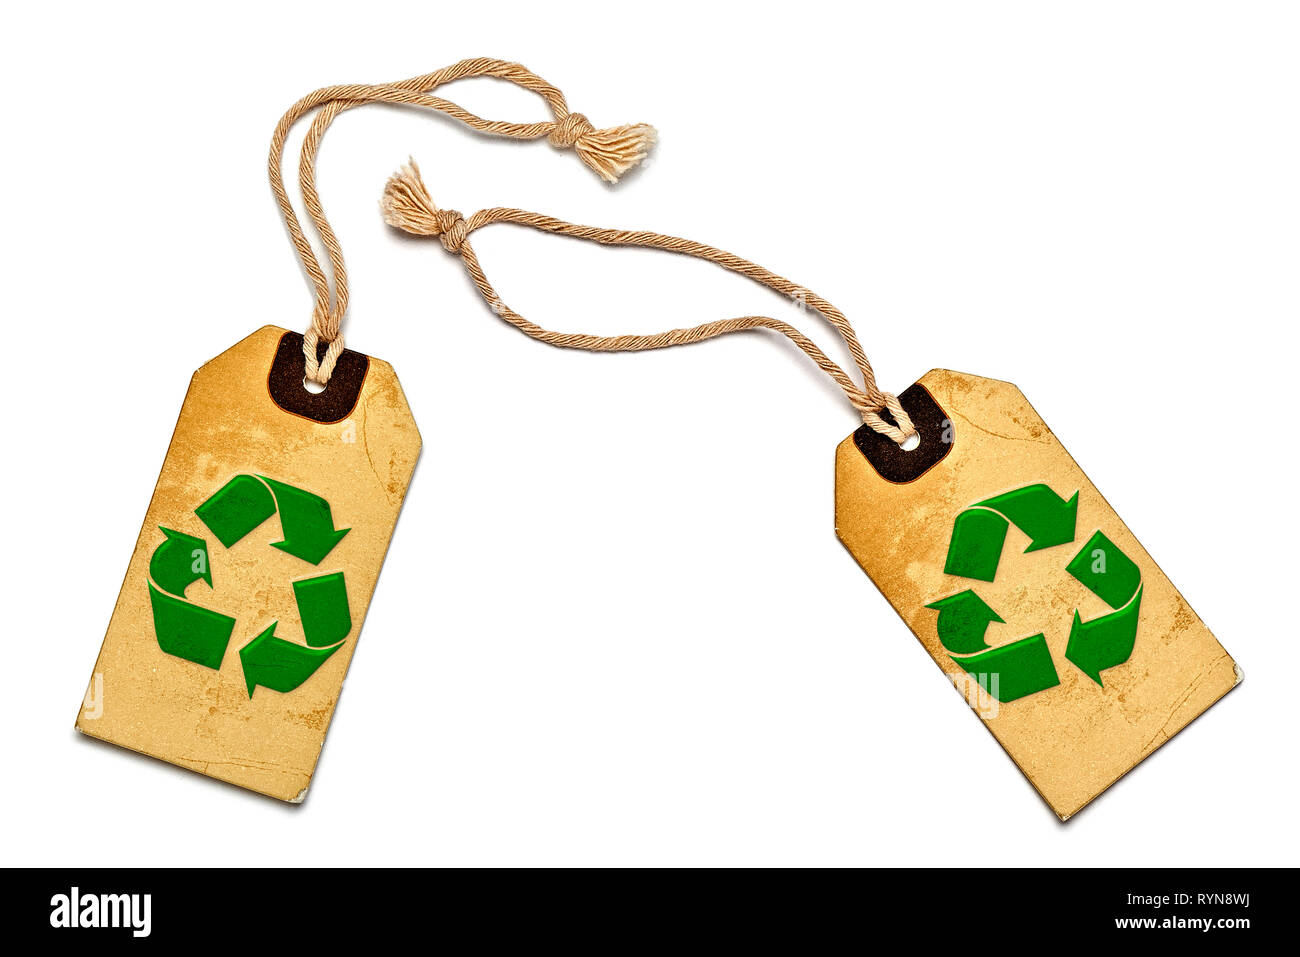 Two natural label tags isolated on white background - Stock Image